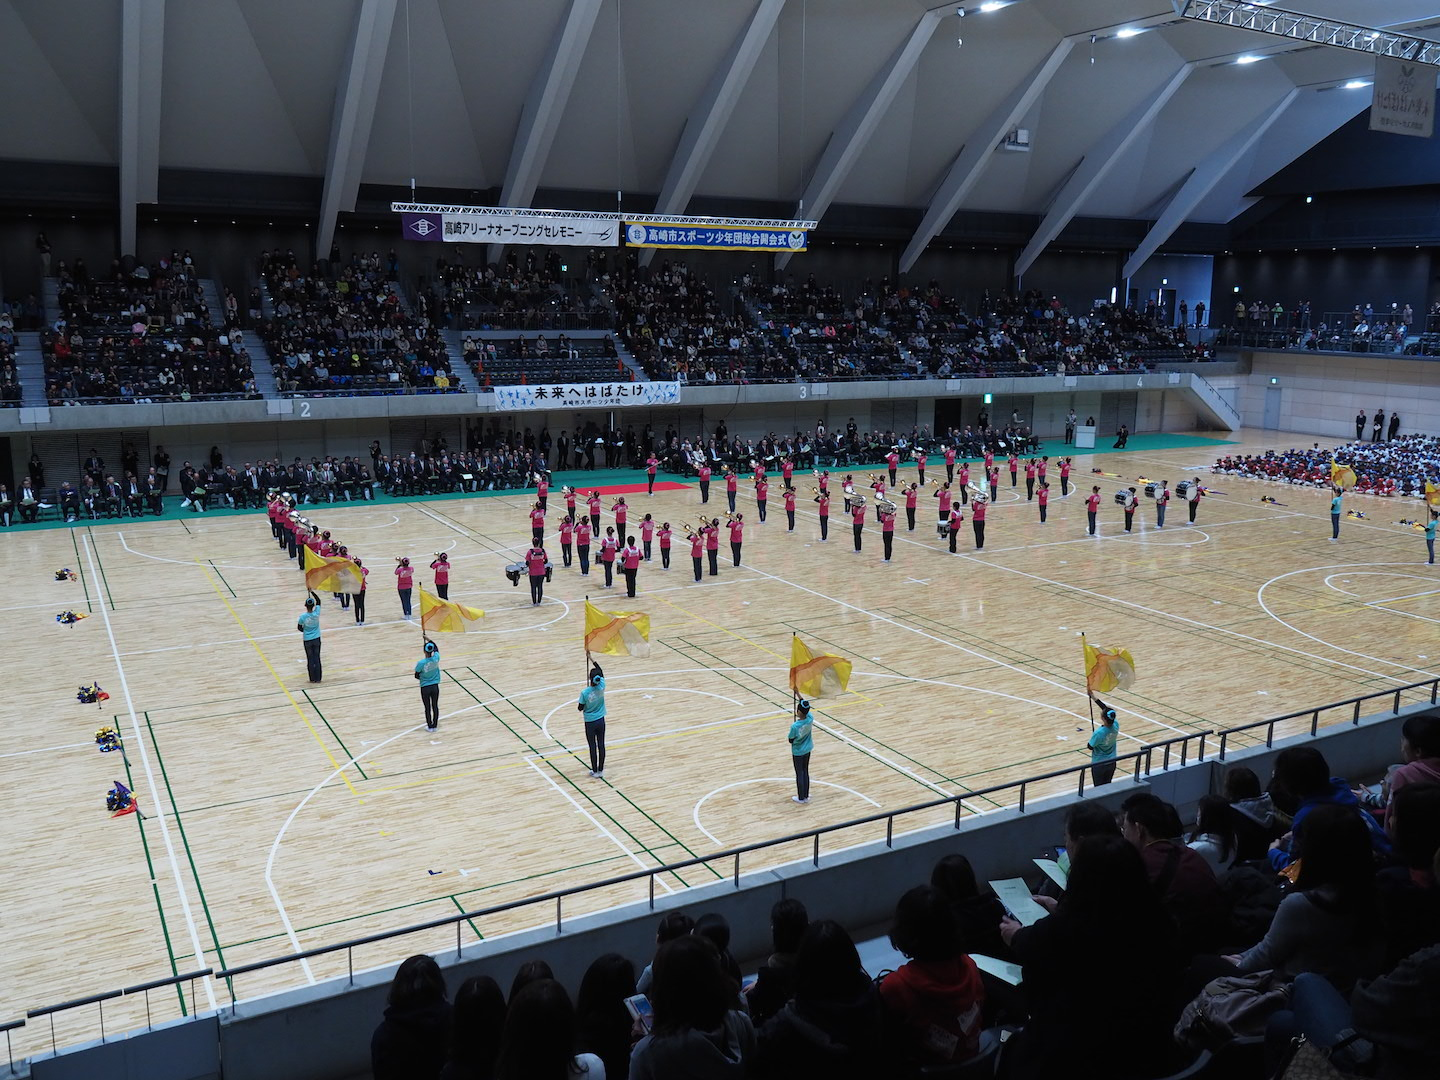 Takasaki Arena Opening Ceremony<br />Performed by<br />The Takasaki Technical Leaders Marching Band 2